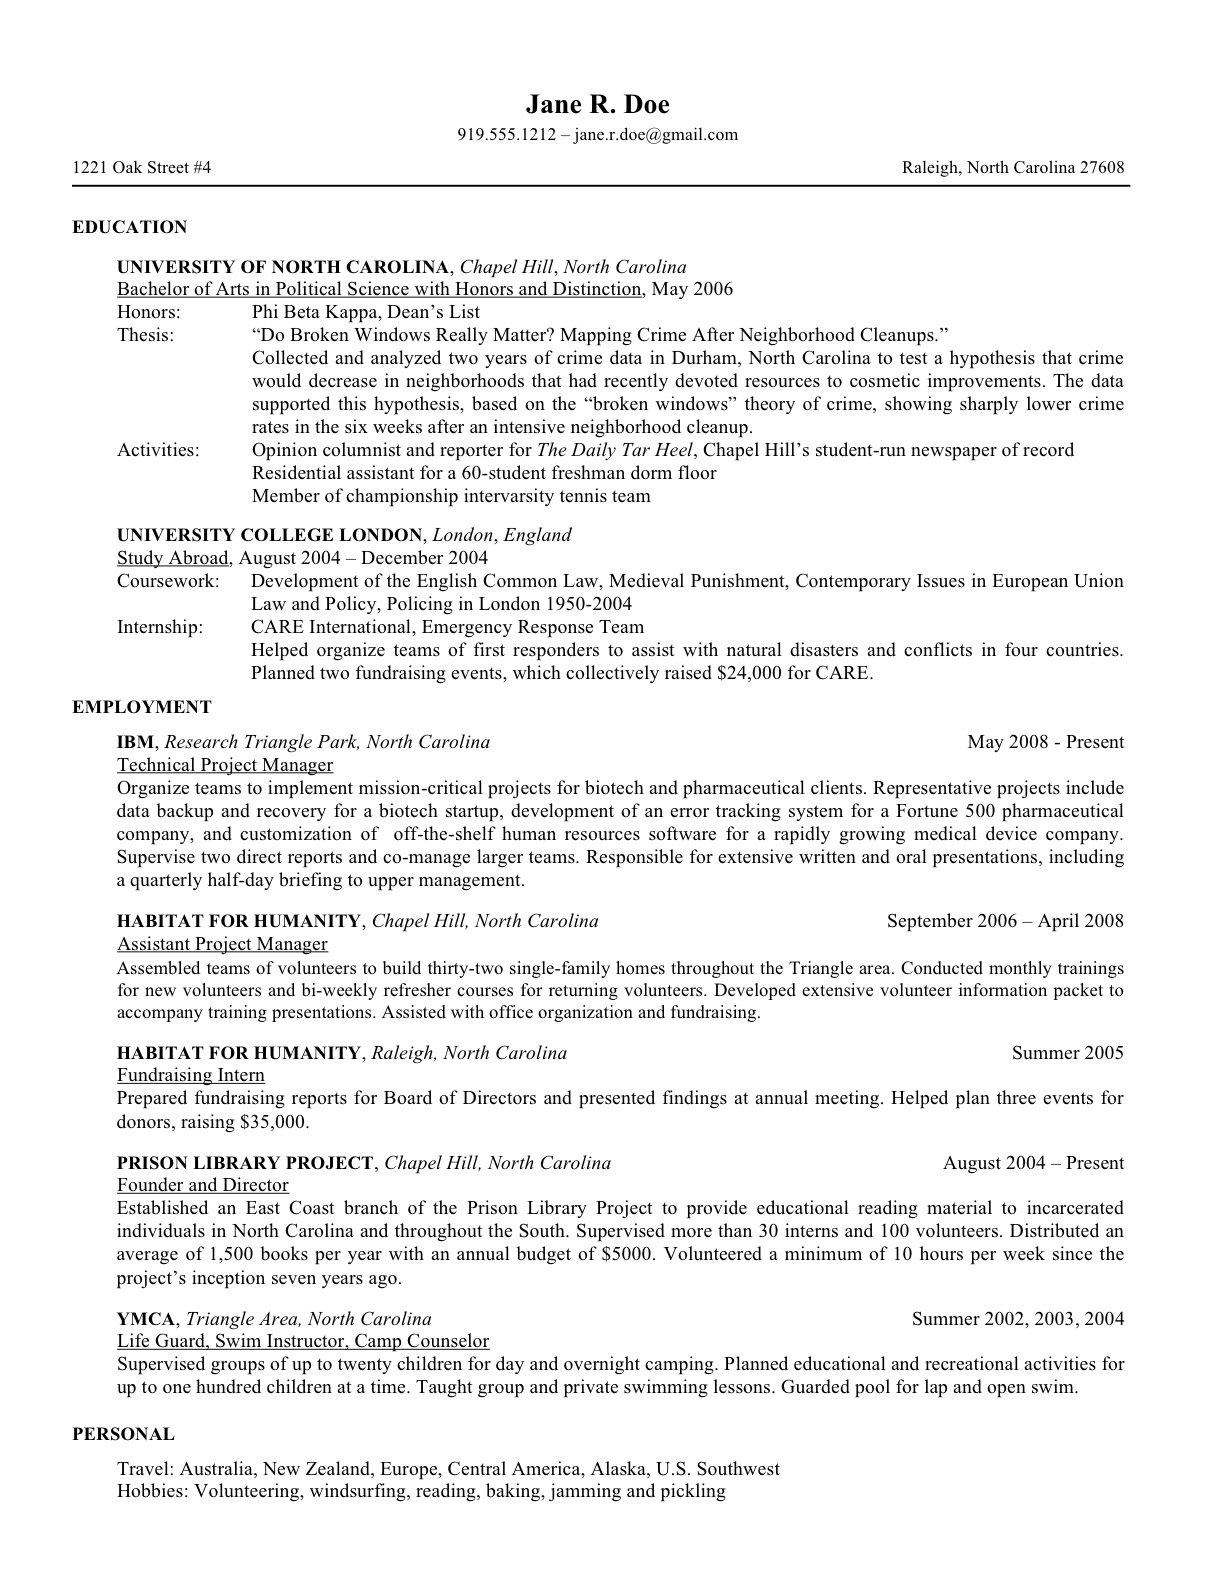 law school resume templates prepping your for of university at habitat humanity clerical Resume Habitat For Humanity Resume